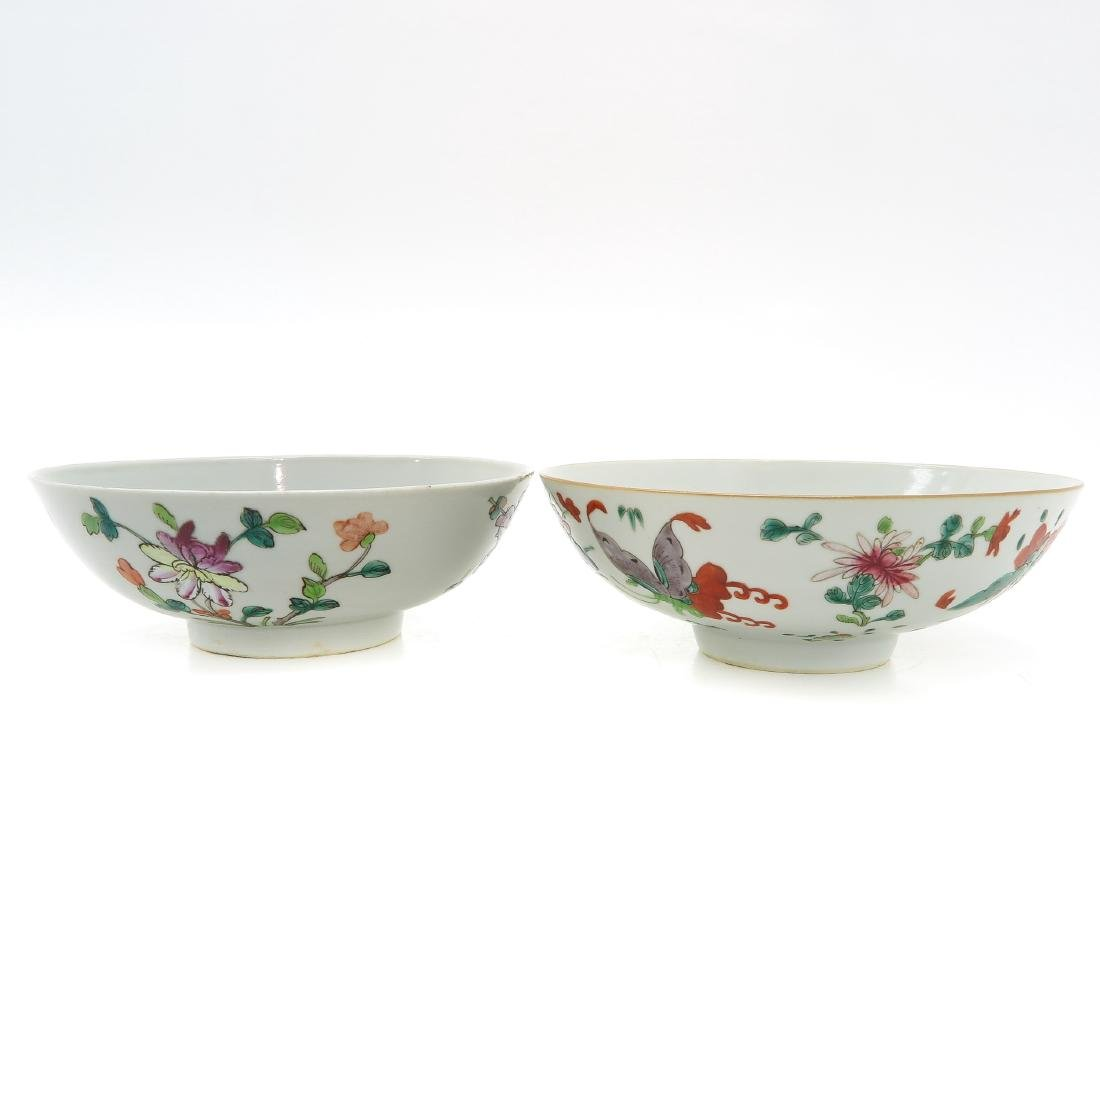 Lot of 2 Bowls